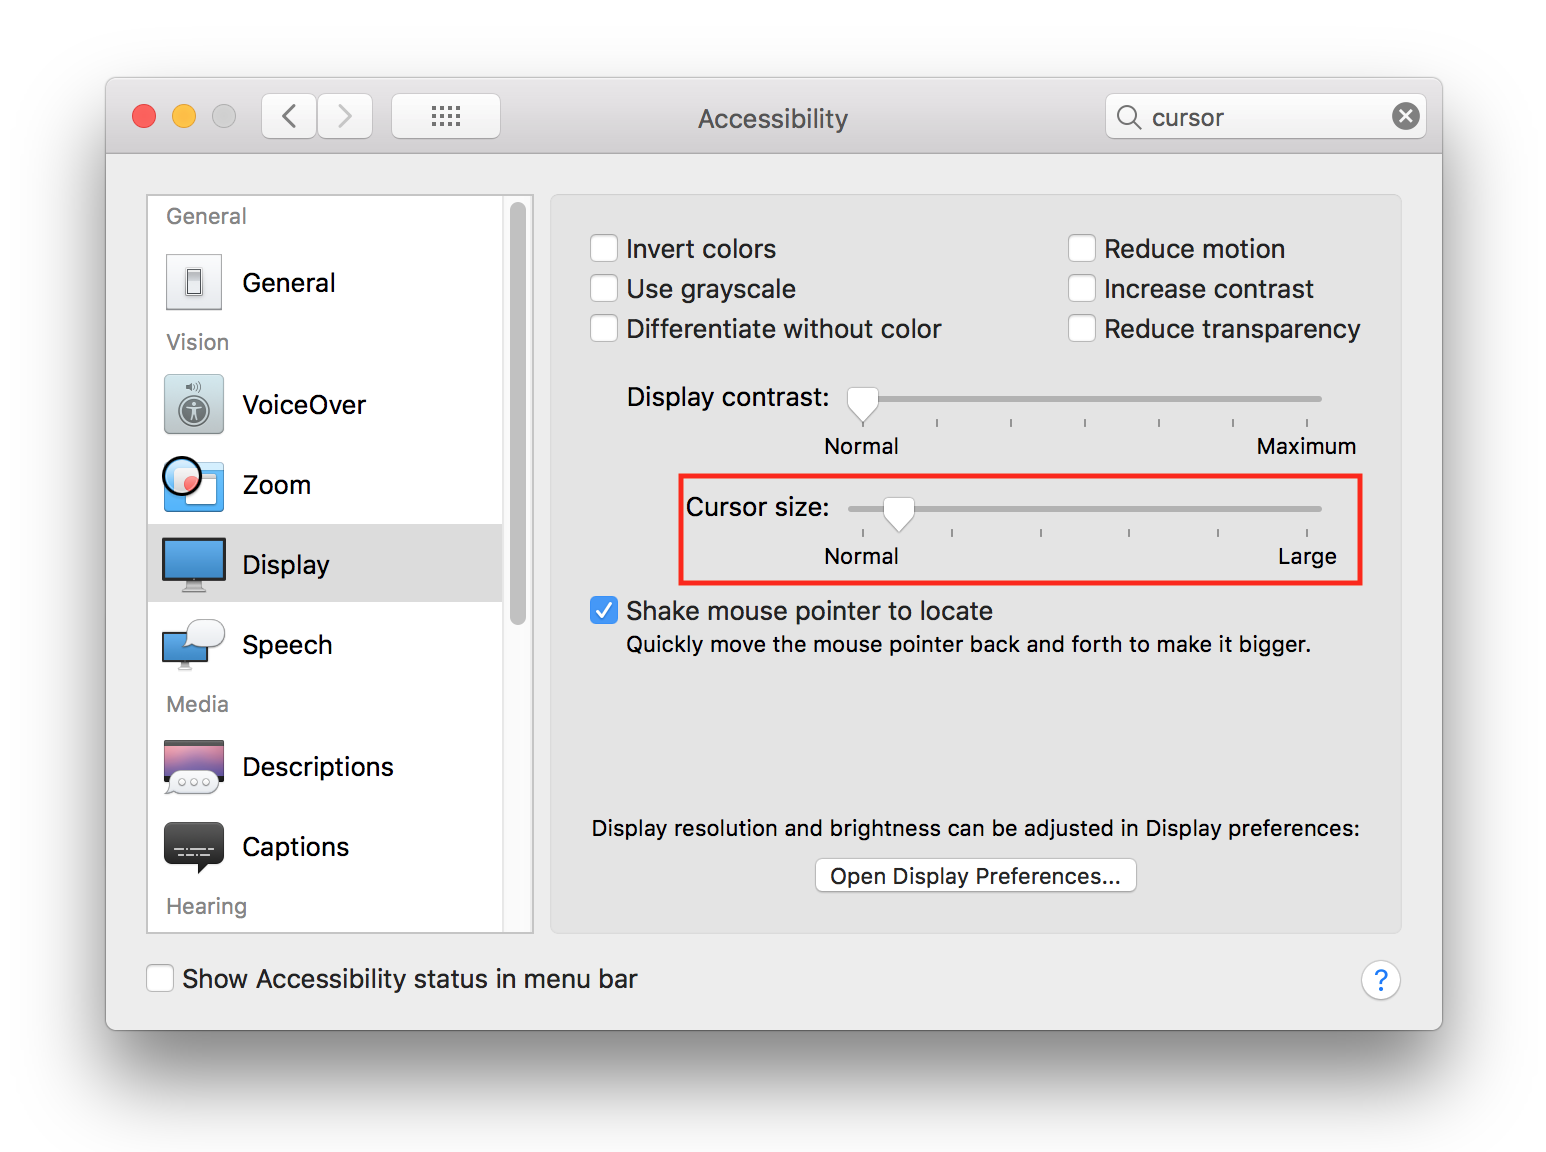 macos  10.13.4  No visible mouse cursor when mouse over editor or ... 84450f93b58